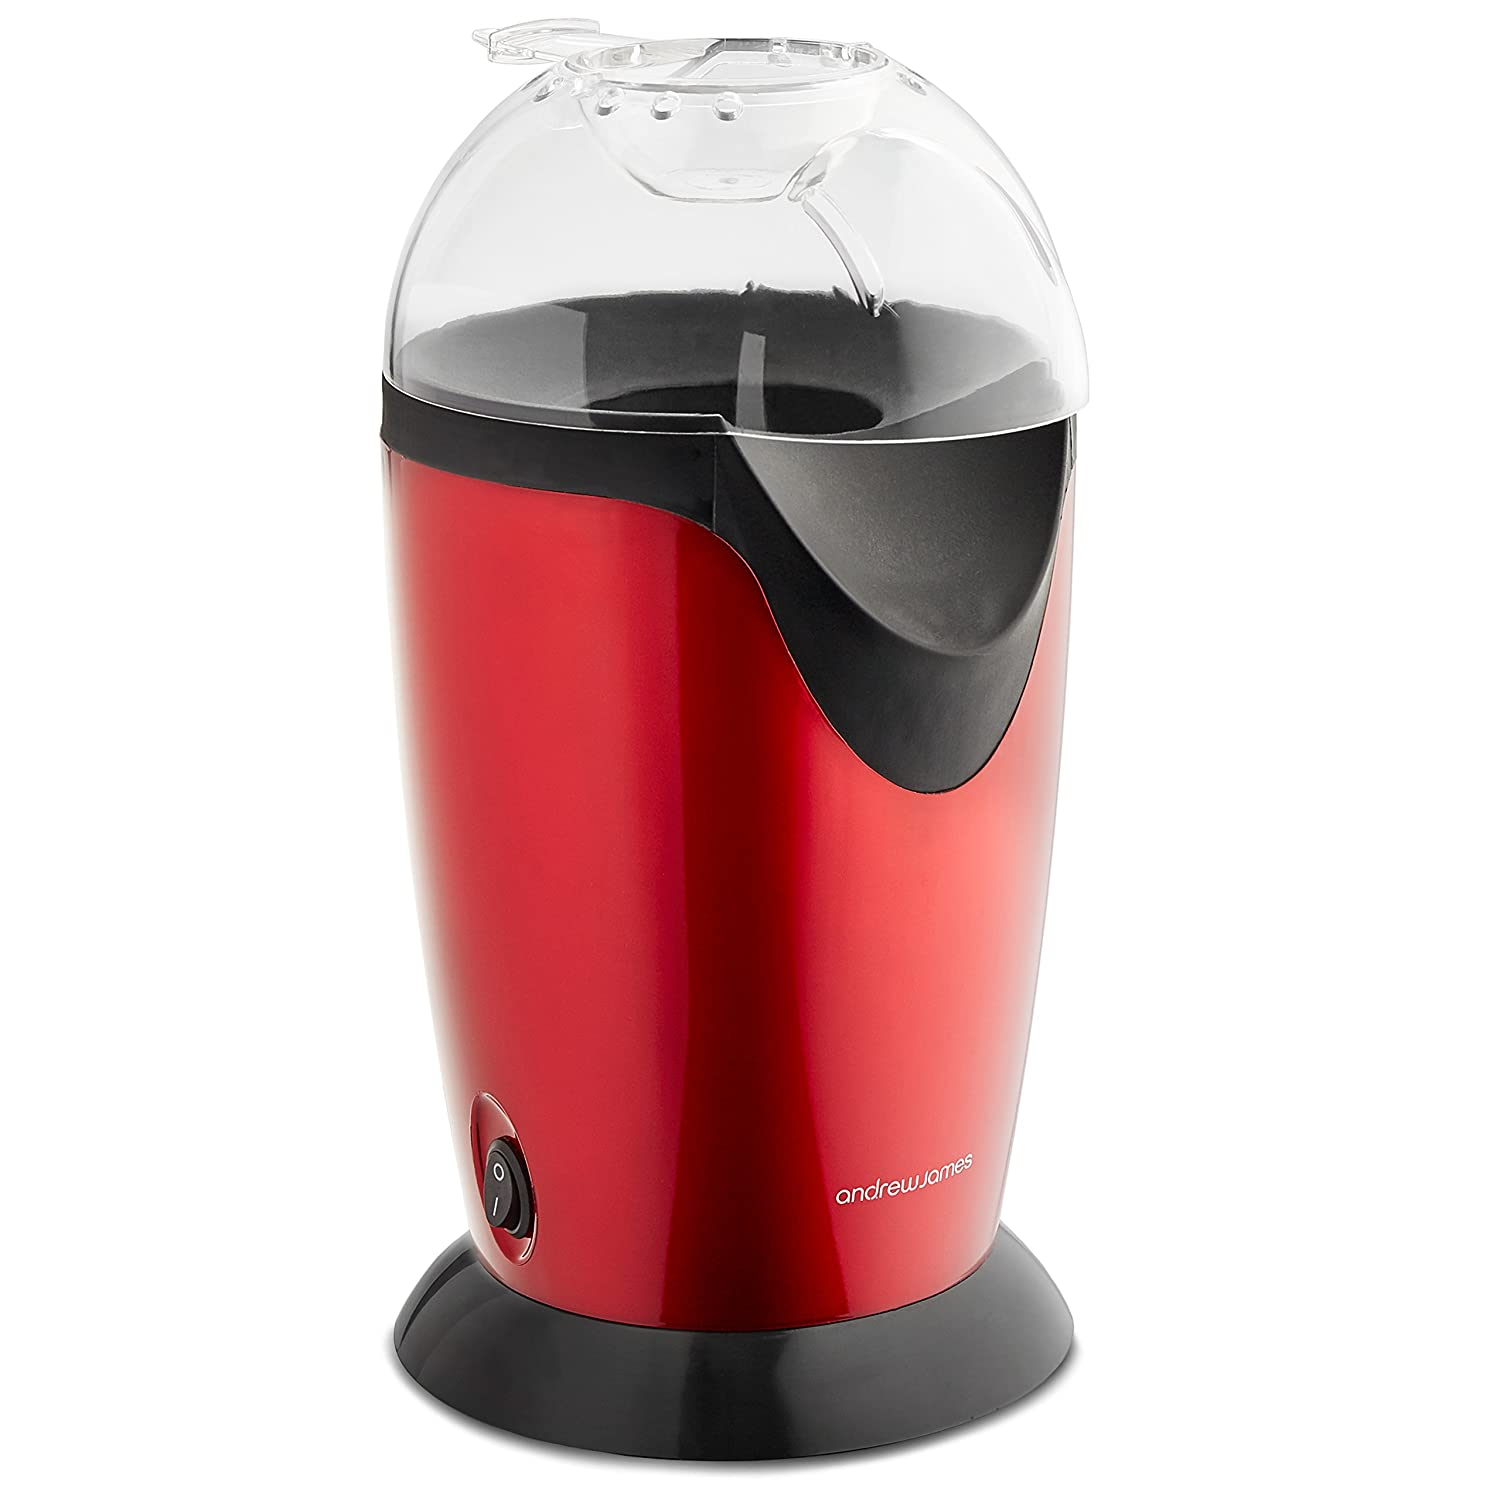 this andrew james gadget is arguably the best popcorn maker available on the market right now best popcorn machine for home use in 2017   reviewinsider uk  rh   reviewinsider co uk